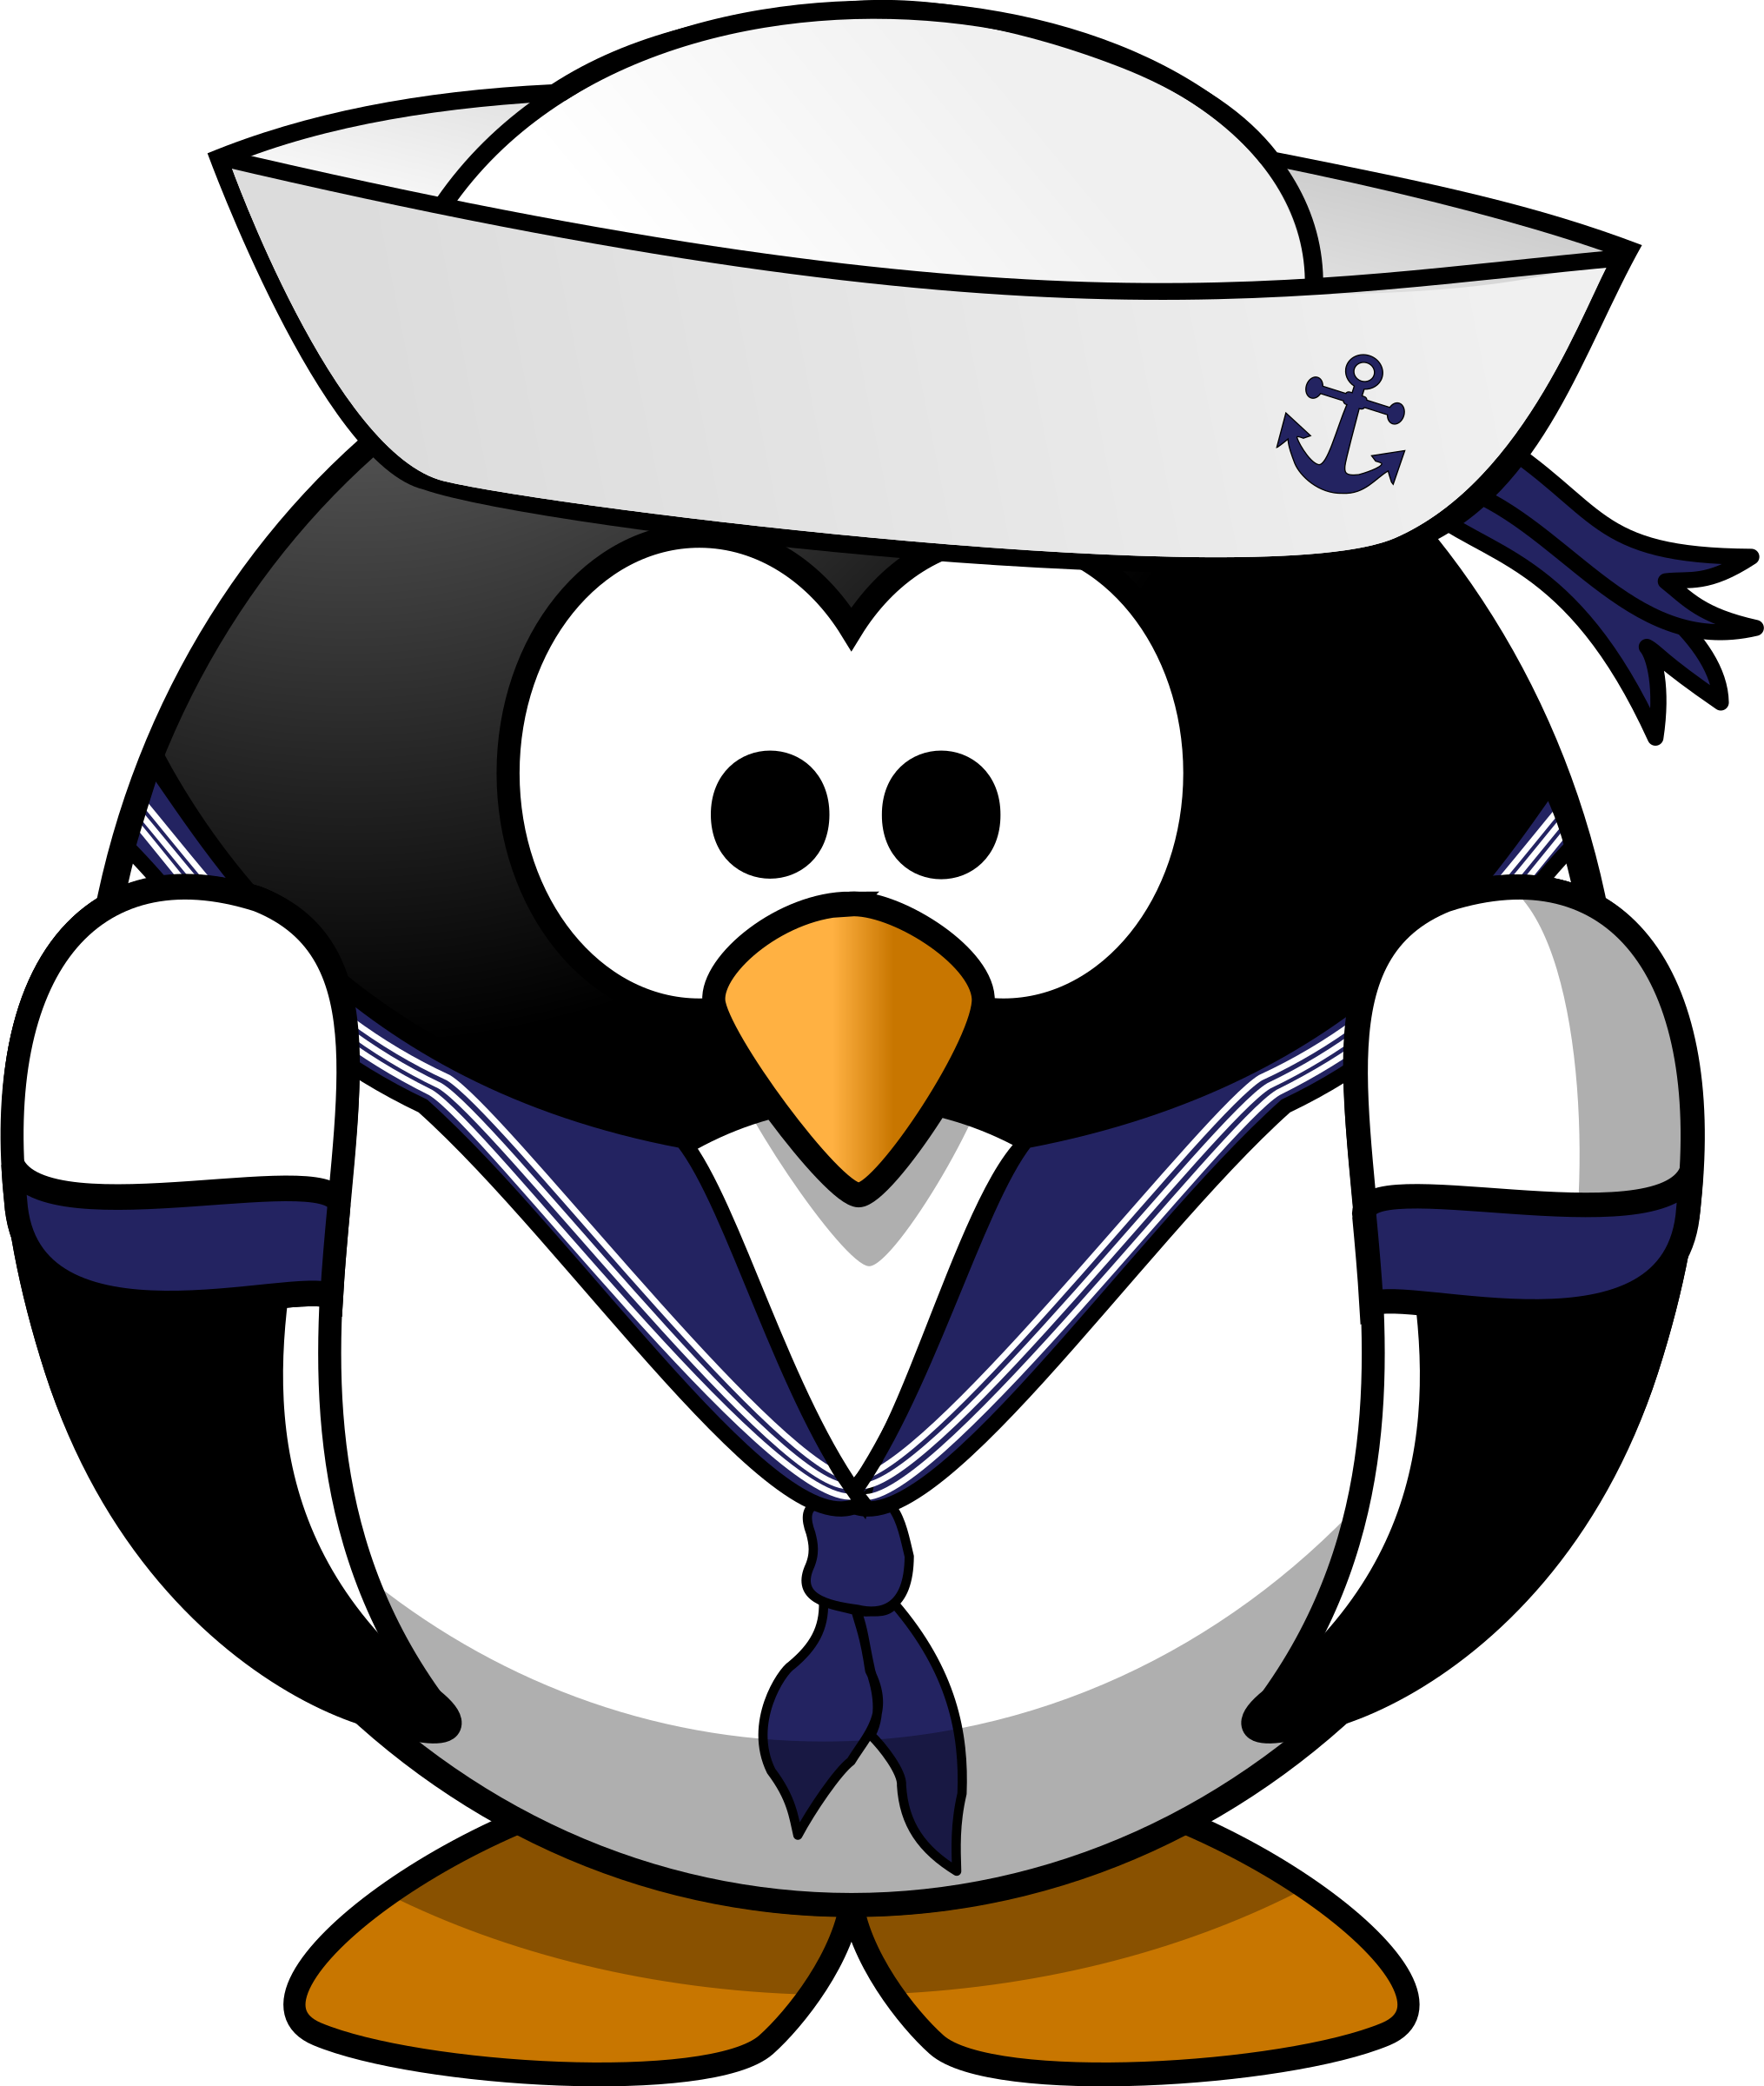 Sailor clipart sailor hat. Penguin big image png